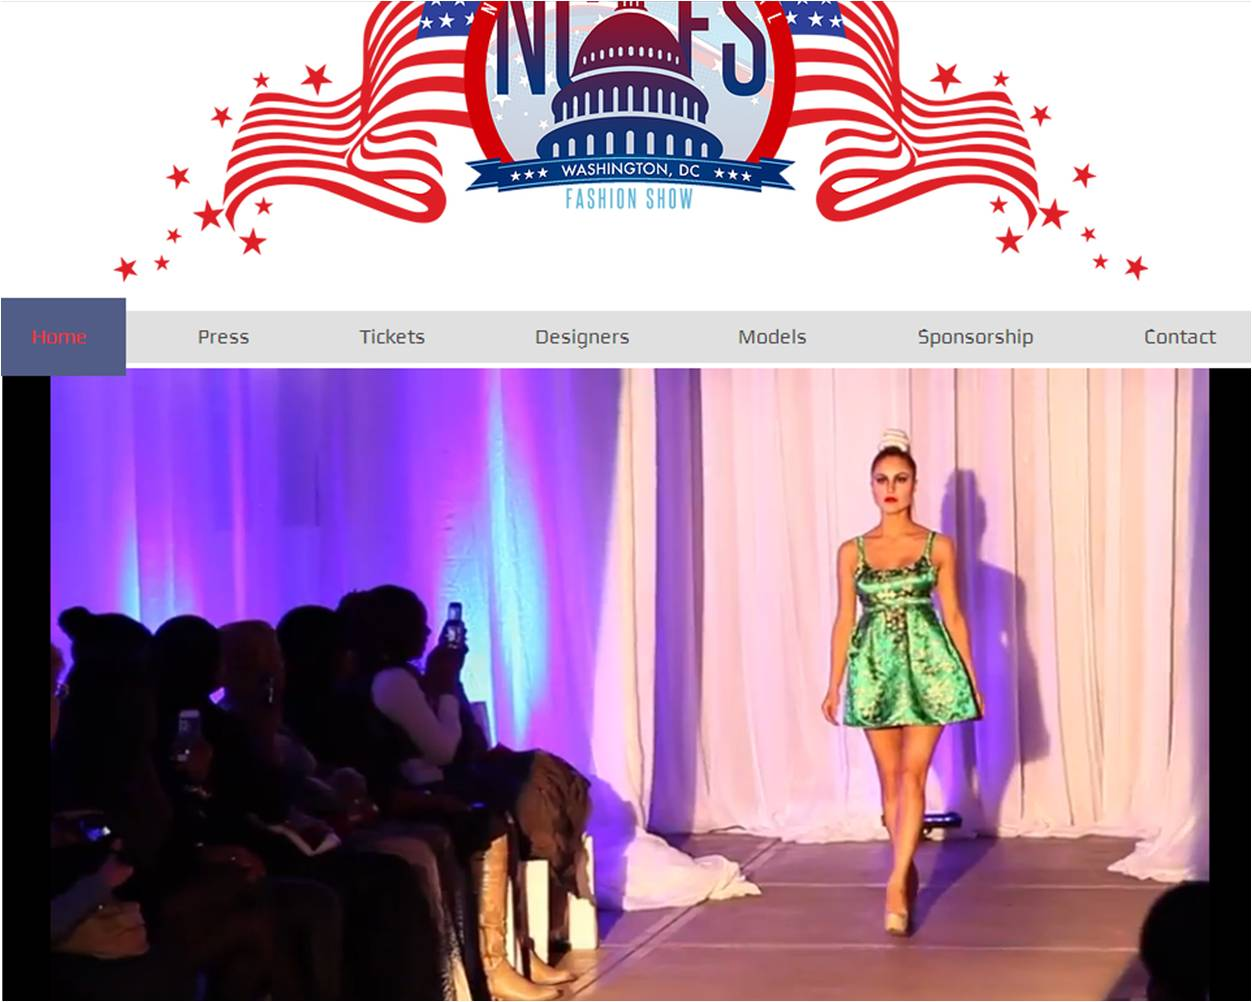 Nation's Capital fashion show